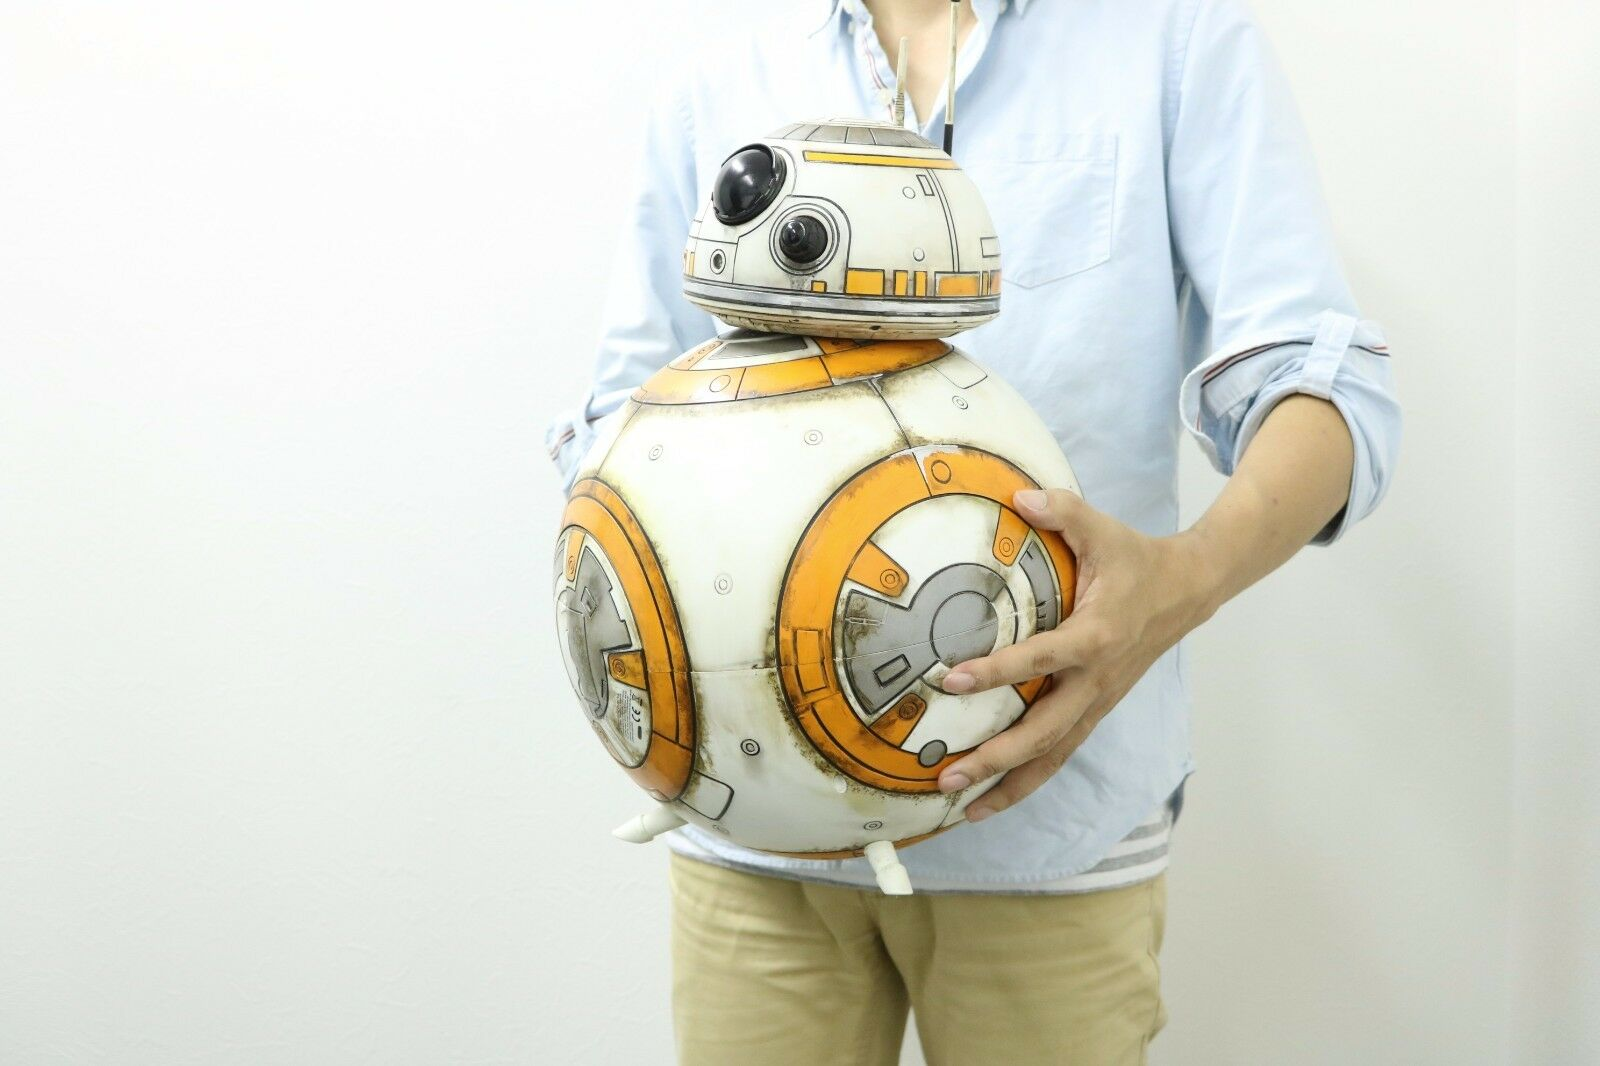 Star Wars BB-8 DX 18inch Electric figure limited weatherosso weatherosso weatherosso design Action Figures bb0d80